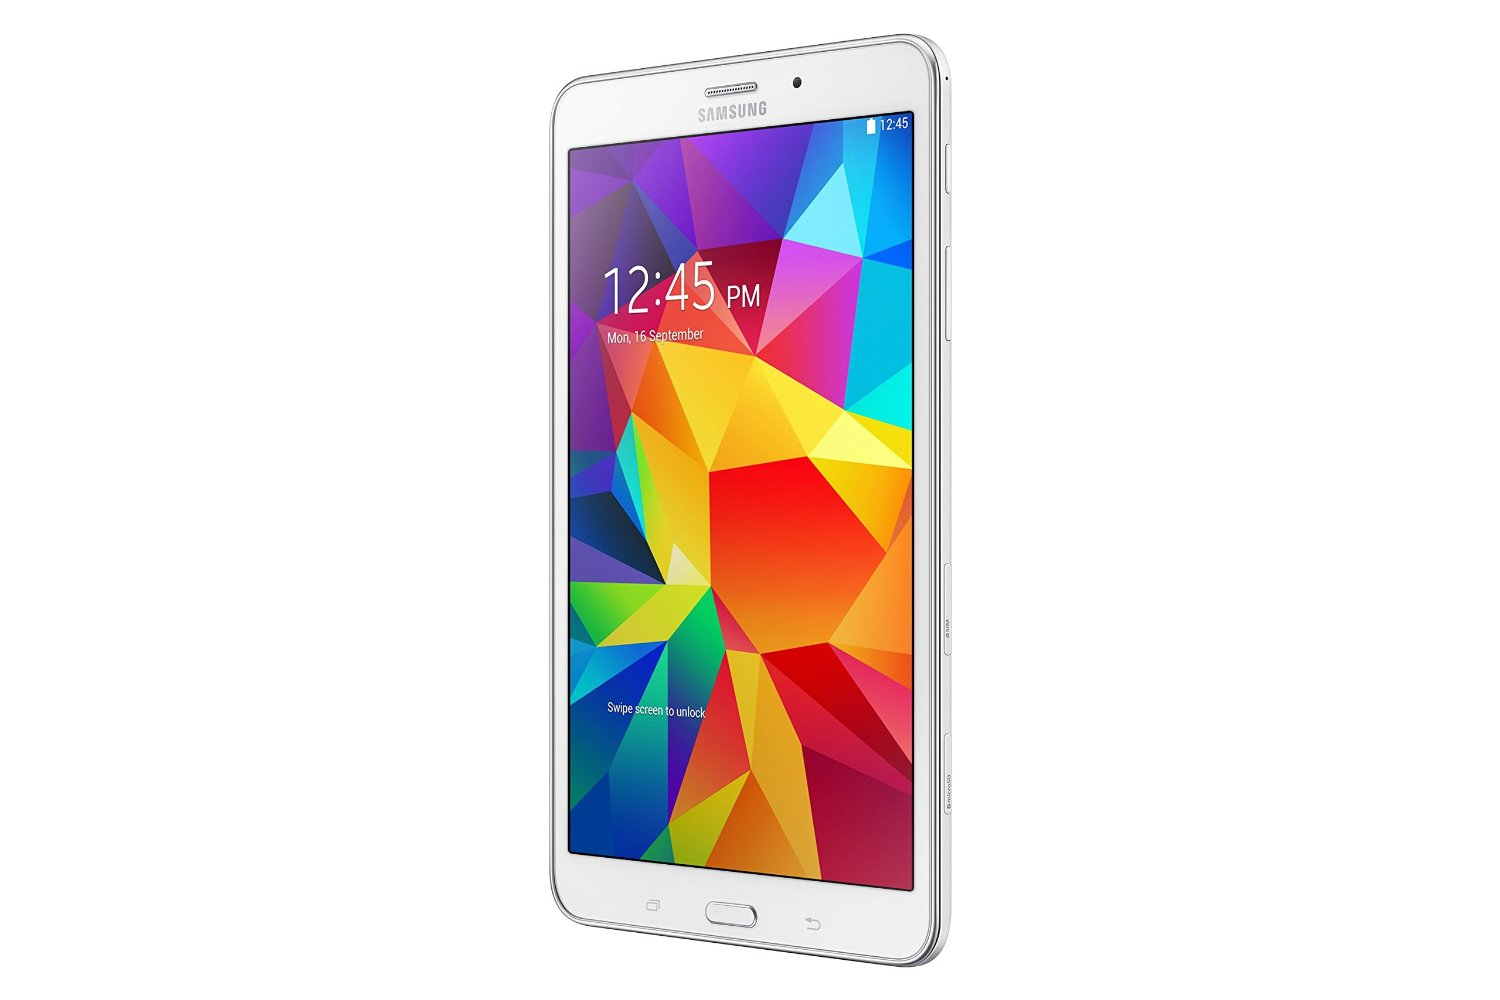 samsung galaxy tab 4 8 0 16gb lte in wei sm t335. Black Bedroom Furniture Sets. Home Design Ideas